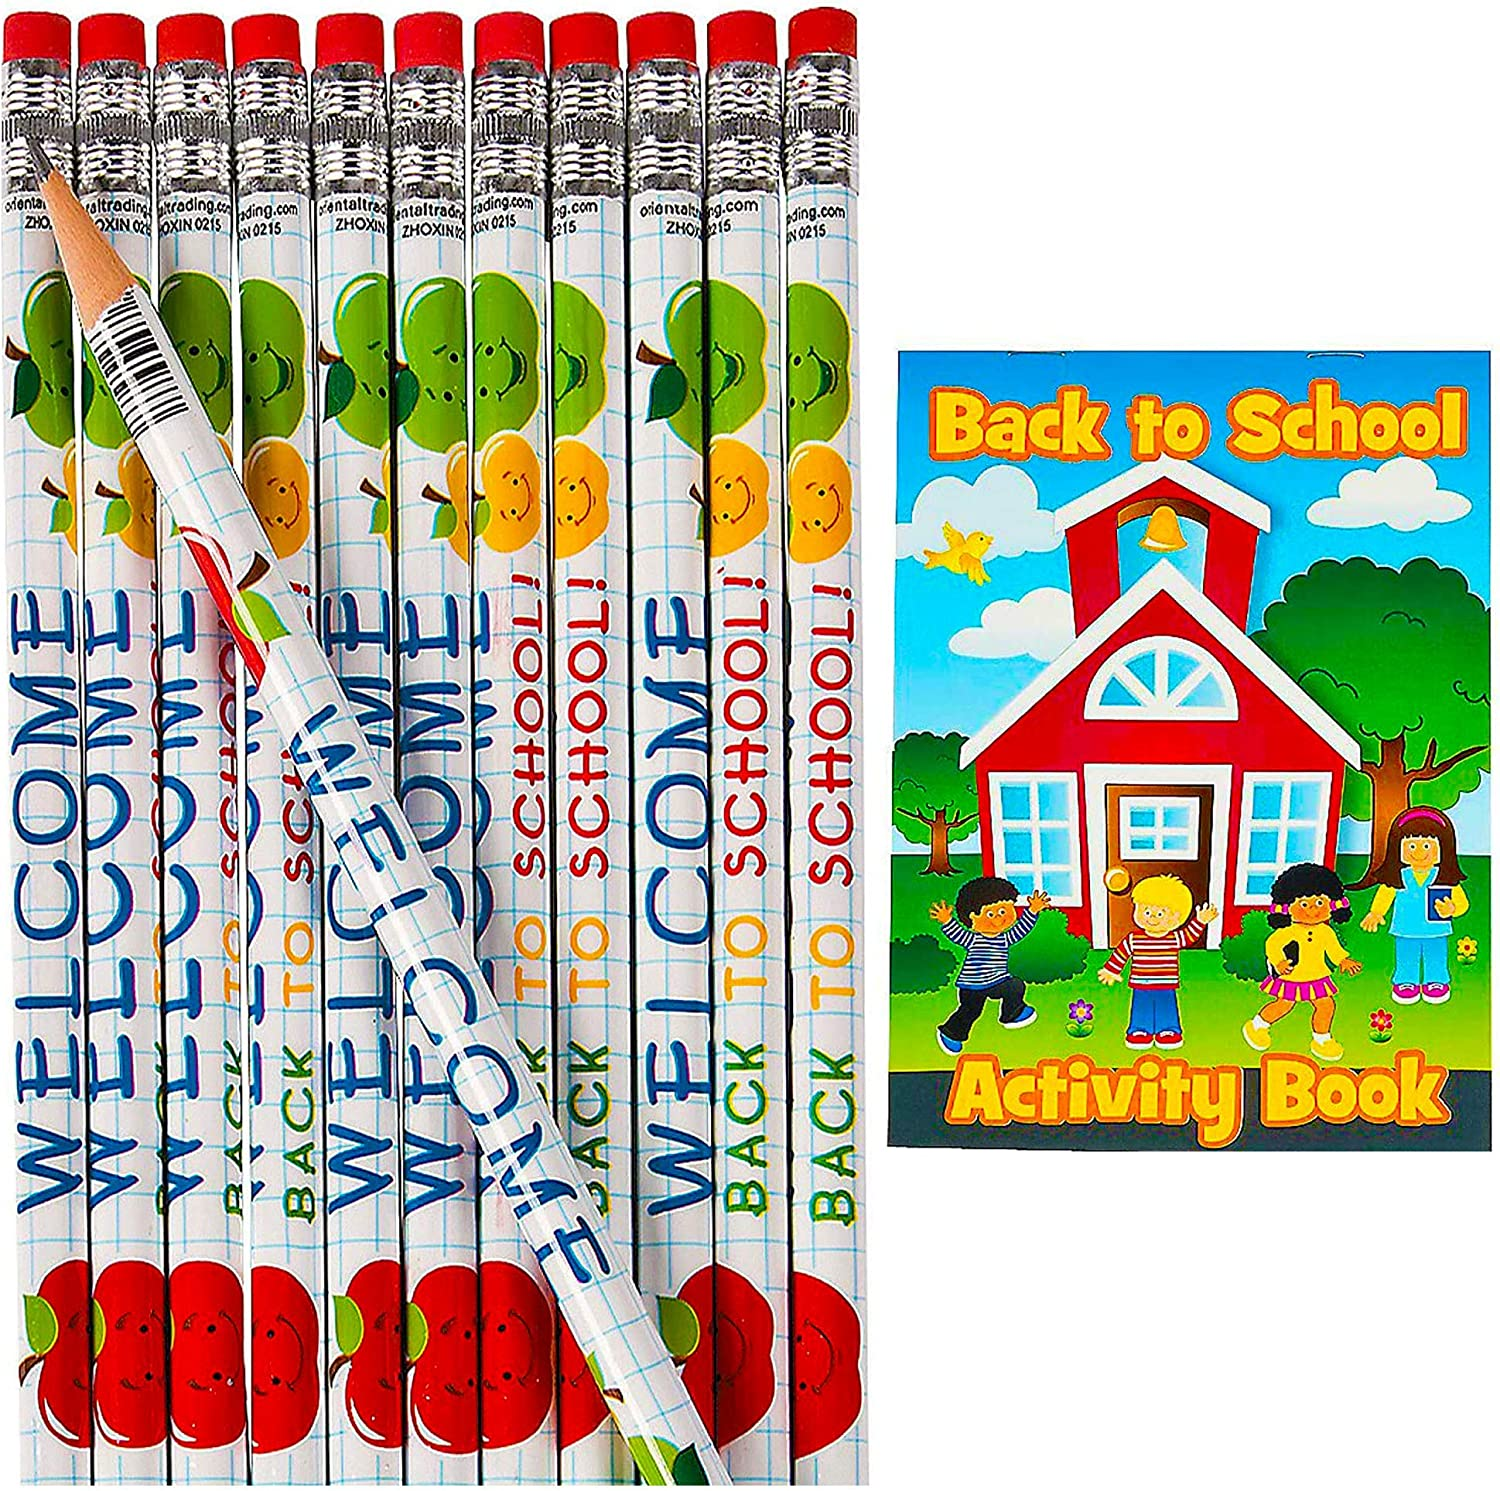 Welcome Back to School Pencils With Activity Books 24 Pcs of Each Teachers Classroom Supplies by 4Es Novelty 24 Set For First Day of School Gift